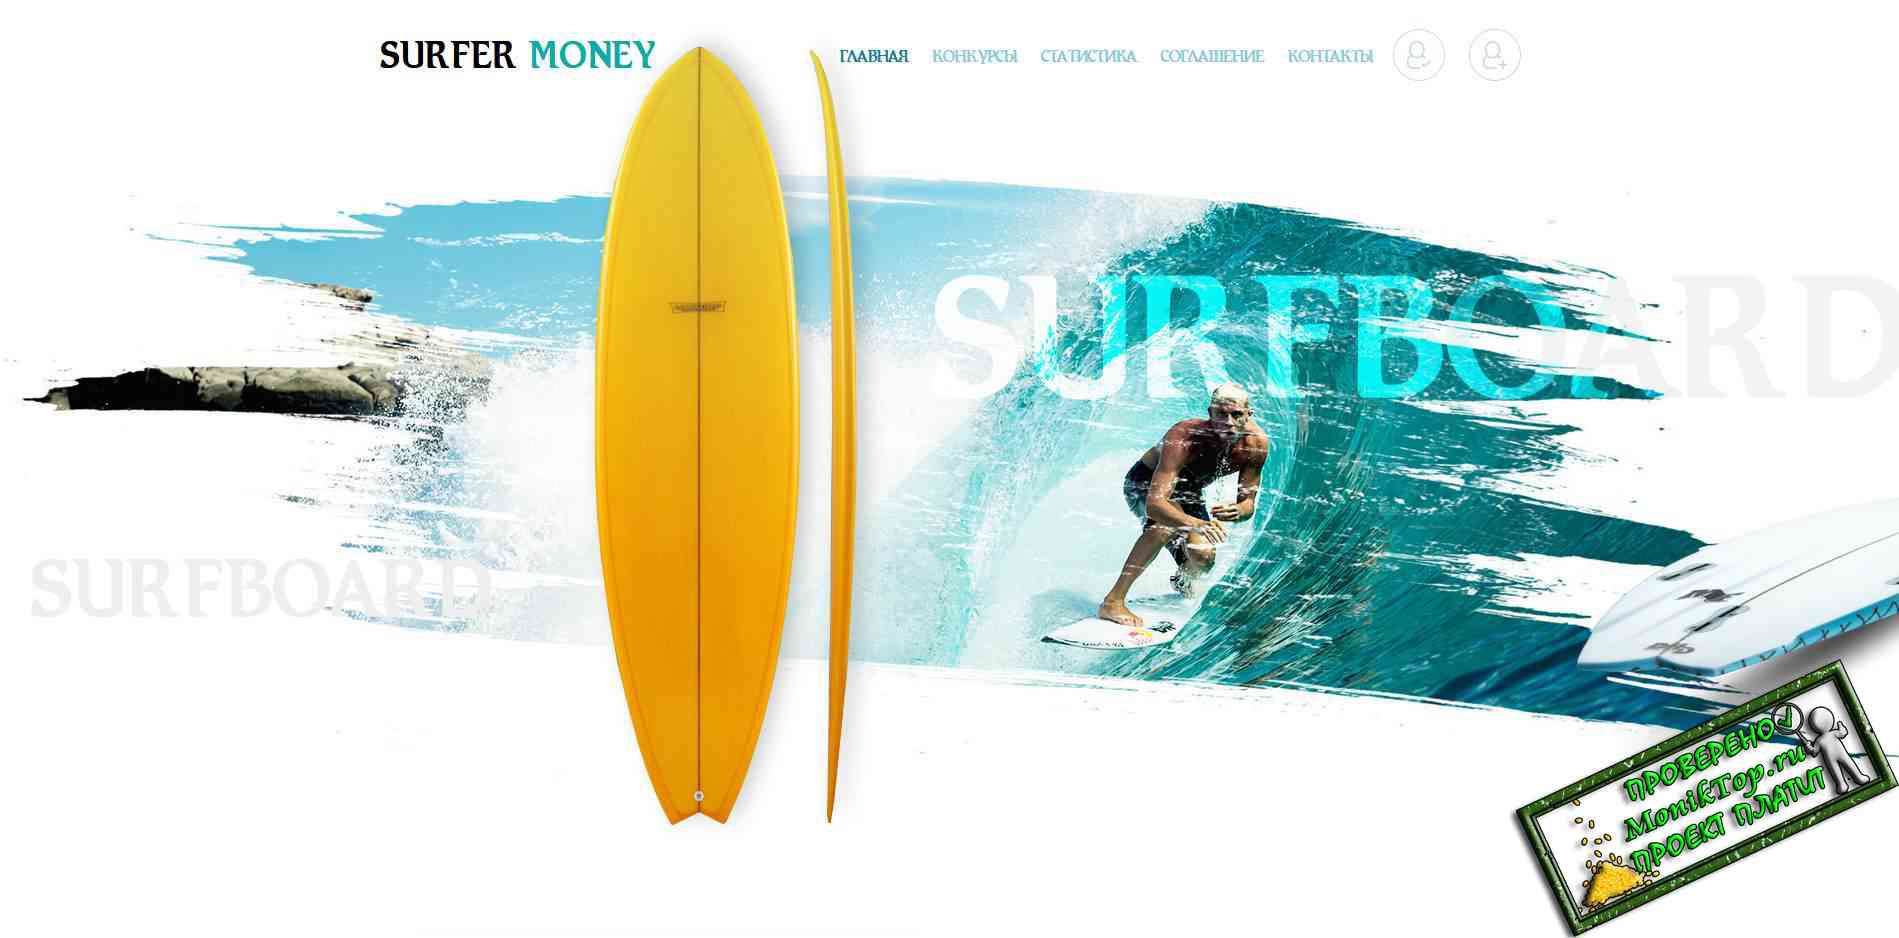 Surfer Money